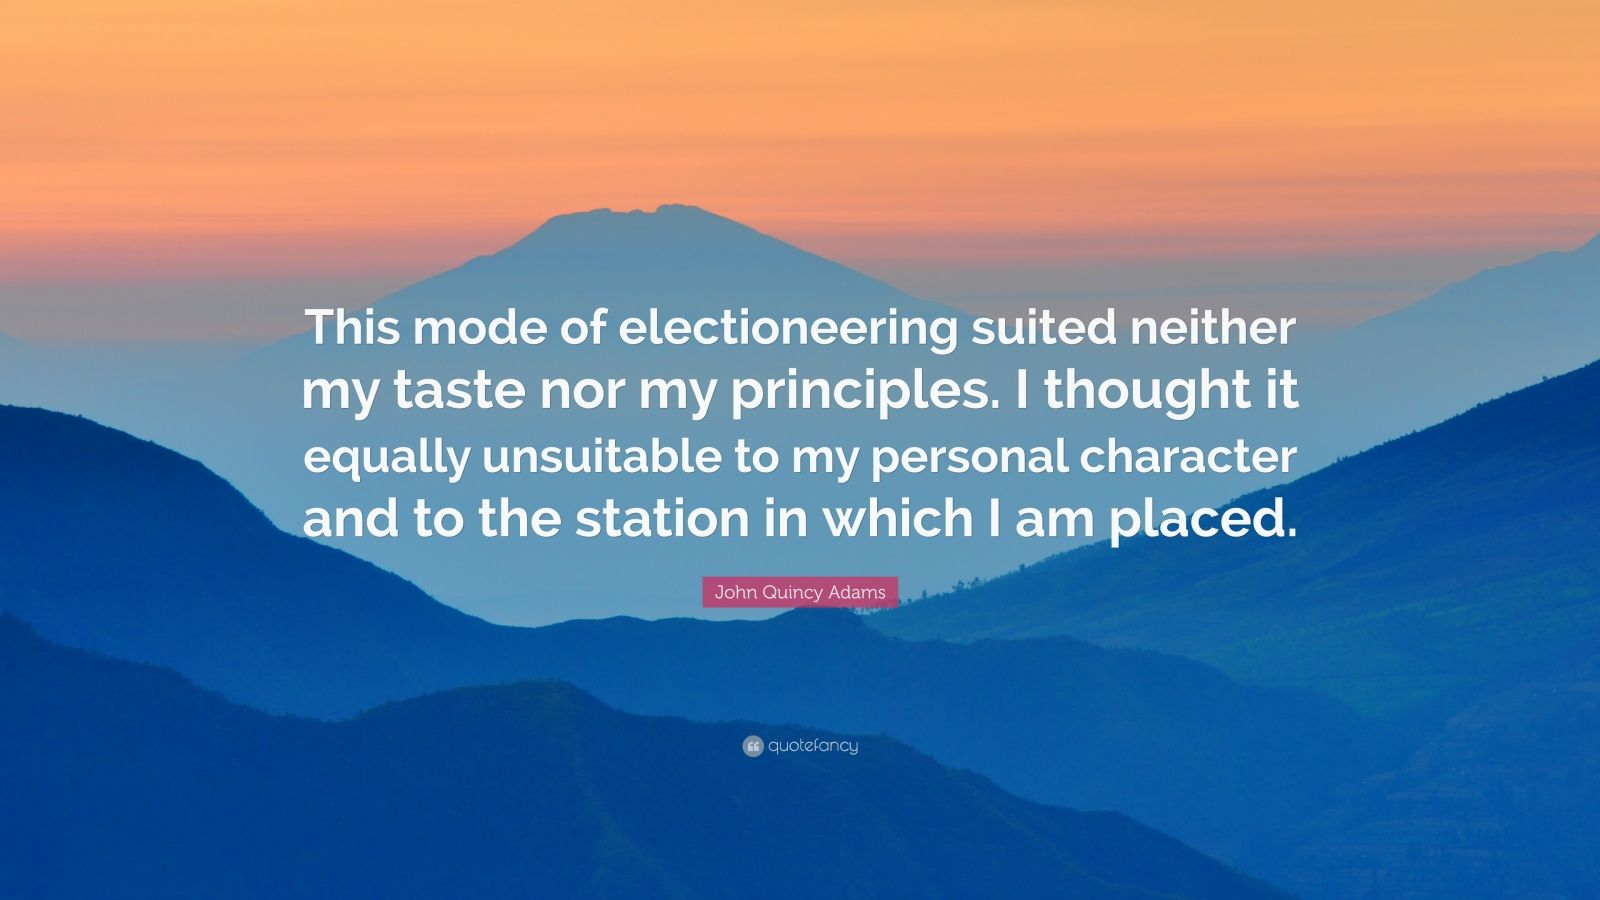 """John Quincy Adams Quote: """"This mode of electioneering suited neither my taste nor my principles. I thought it equally unsuitable to my personal character and to the station in which I am placed."""""""